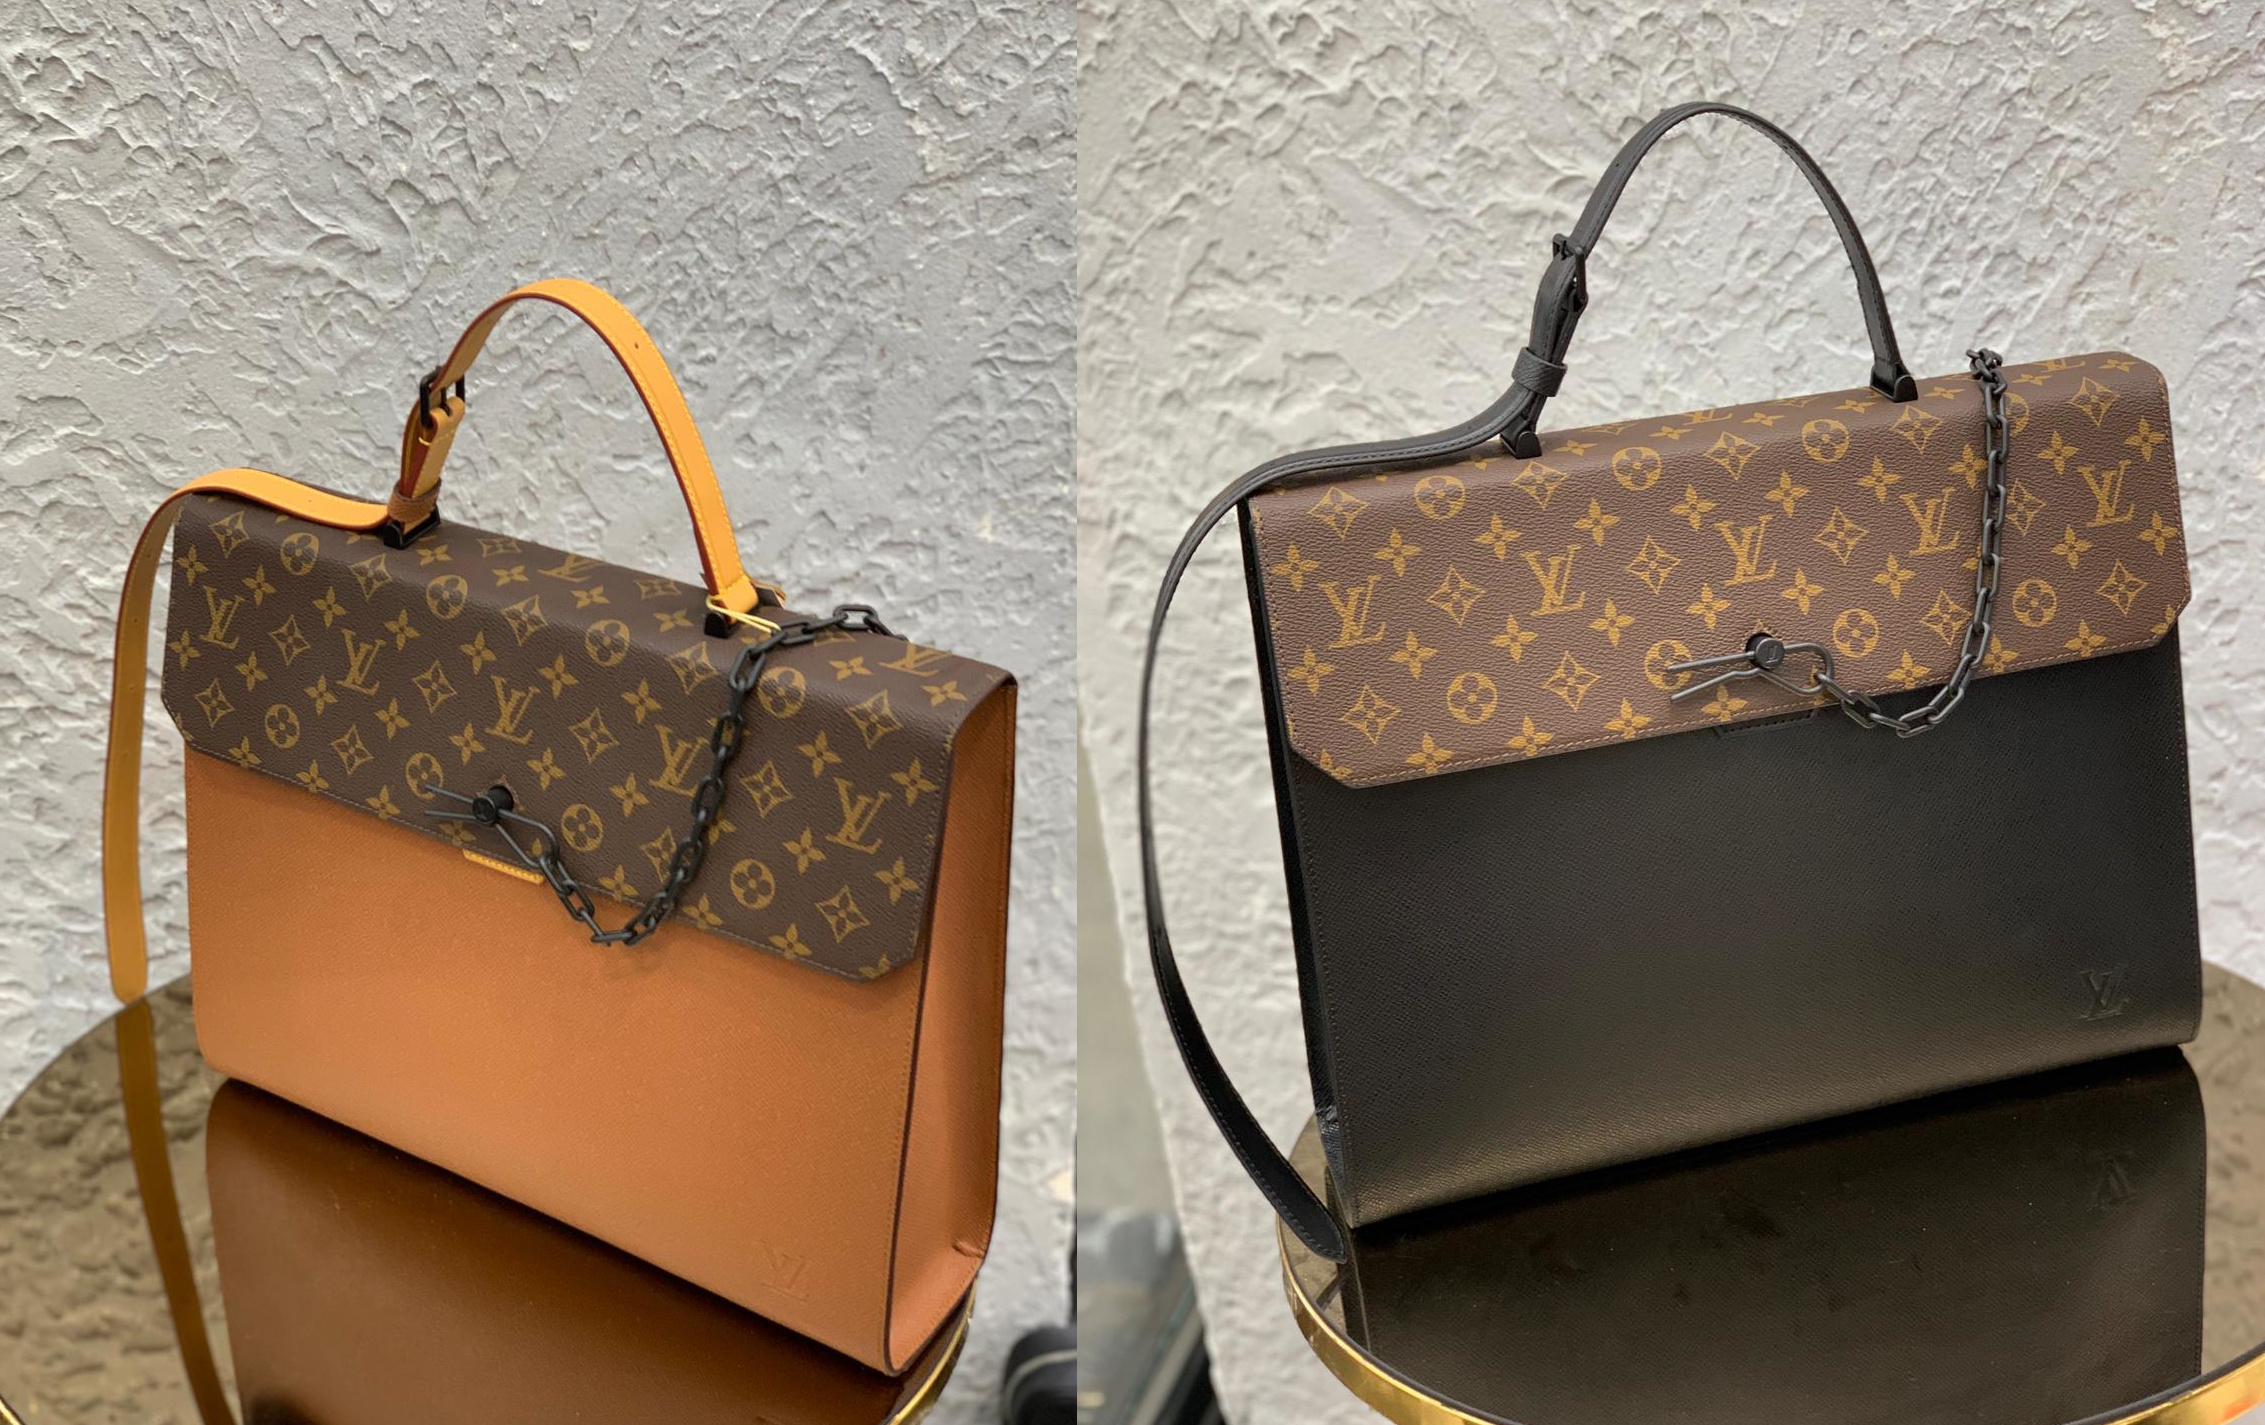 The colors on these bags are so yummy! A stark contrast to the serious business that these brief cases demand.